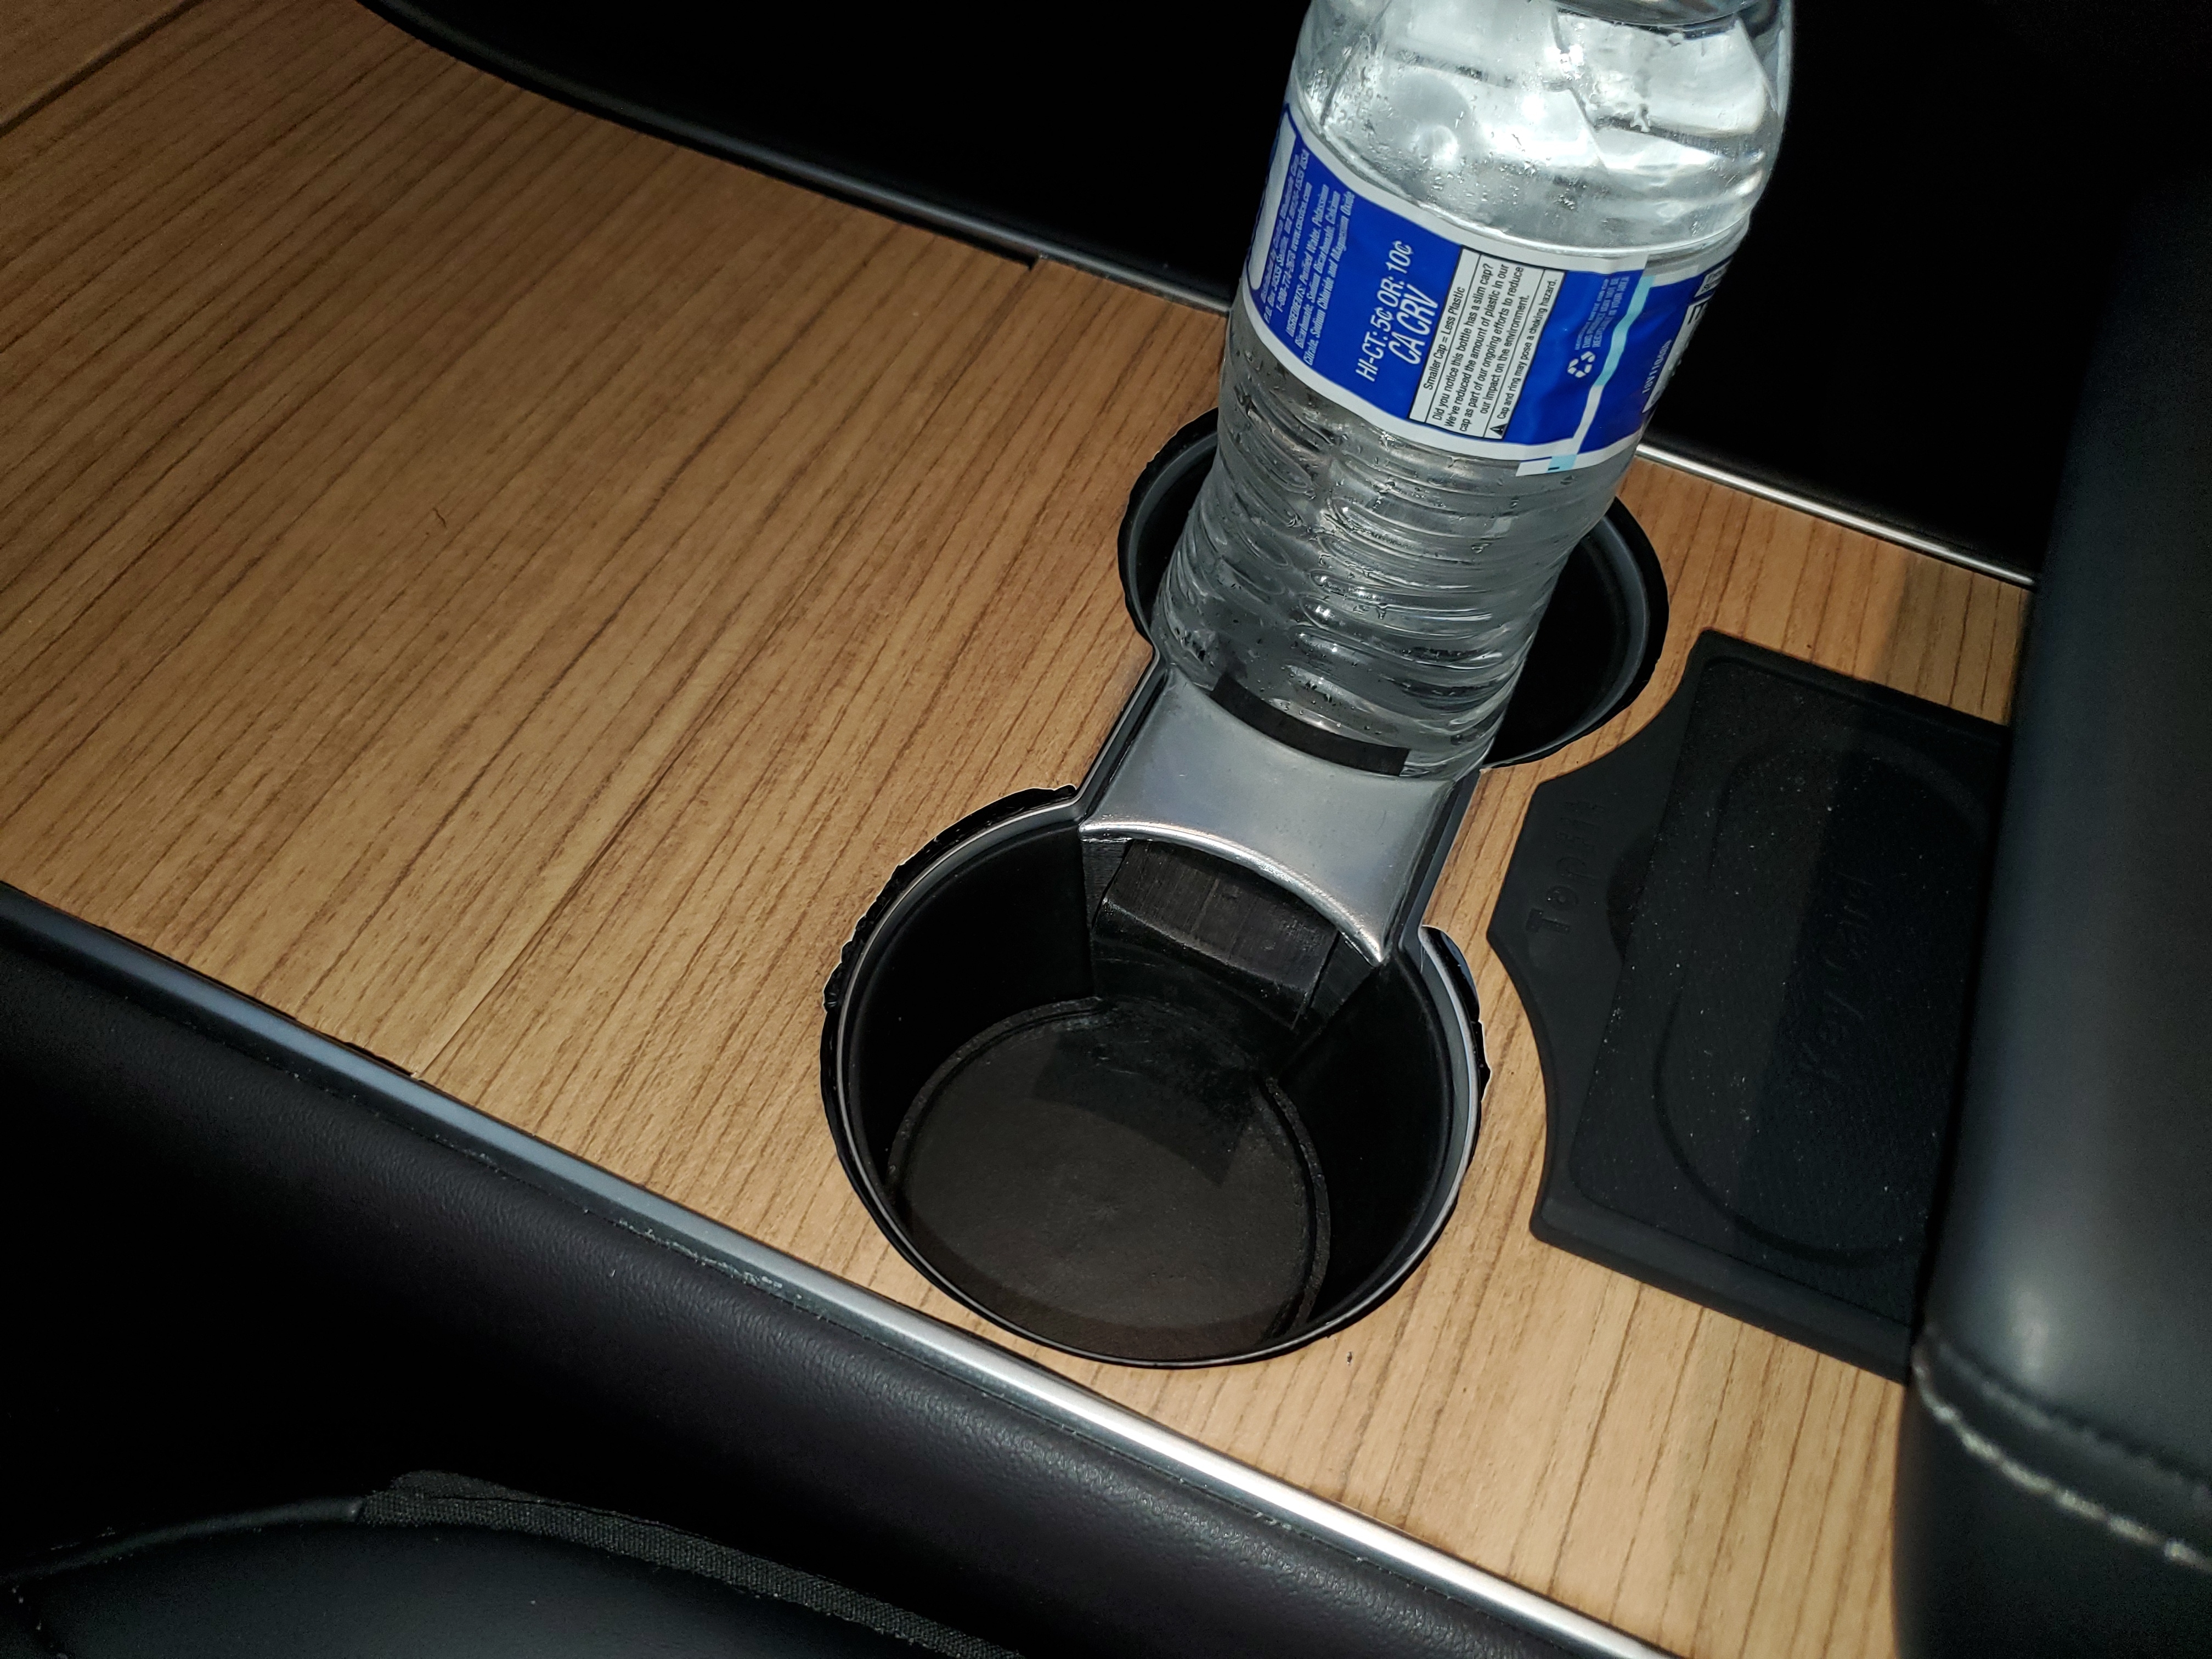 Tesla Model 3 Combined Cupholder and Liner